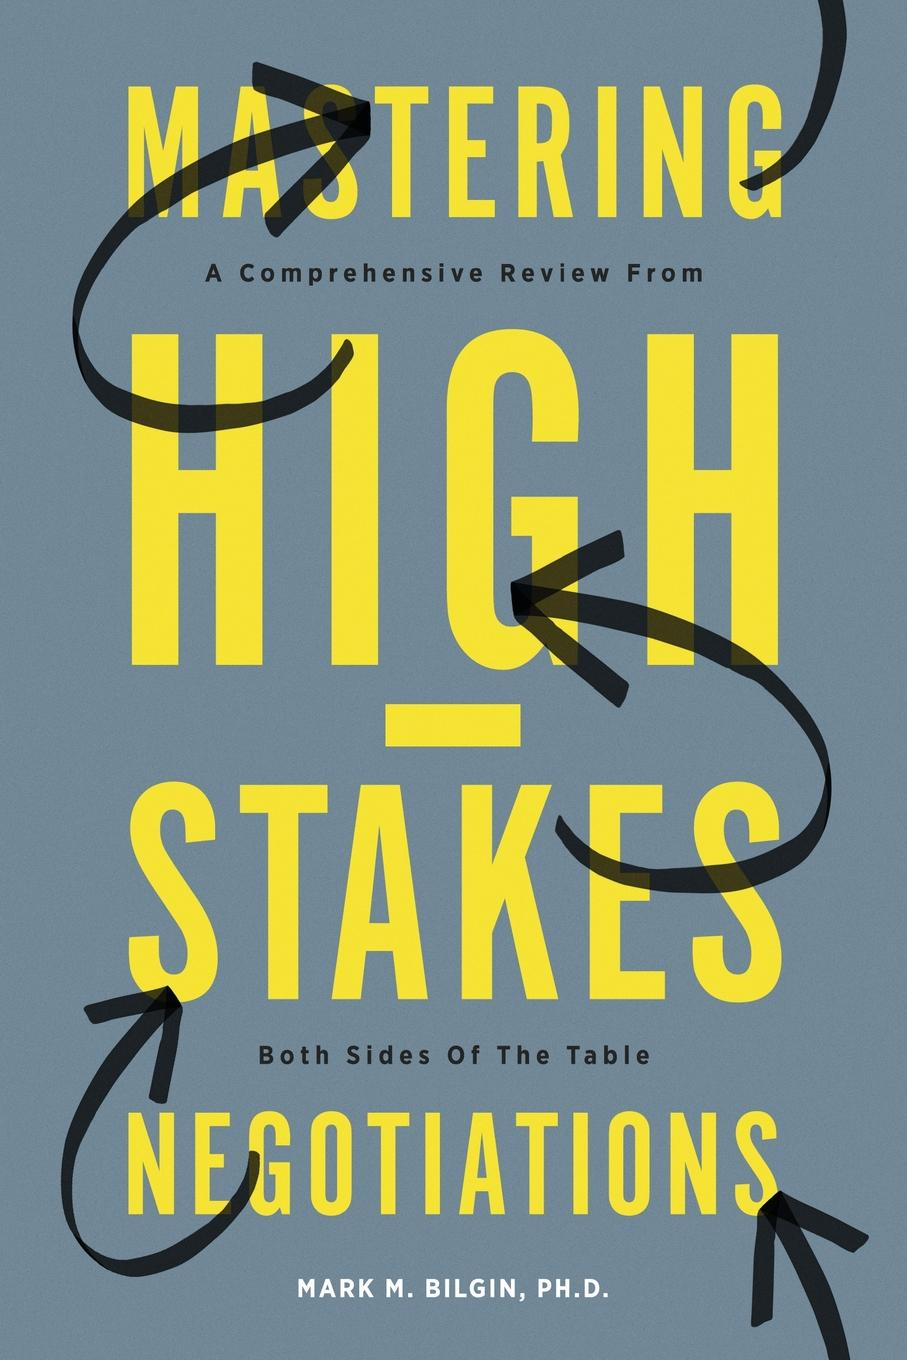 Mark Bilgin Mastering High-Stakes Negotiations. A Comprehensive Review From Both Sides Of The Table 2016 the new recommendation of the two sides of the two sides of the pineapple service women s clothing split body and european